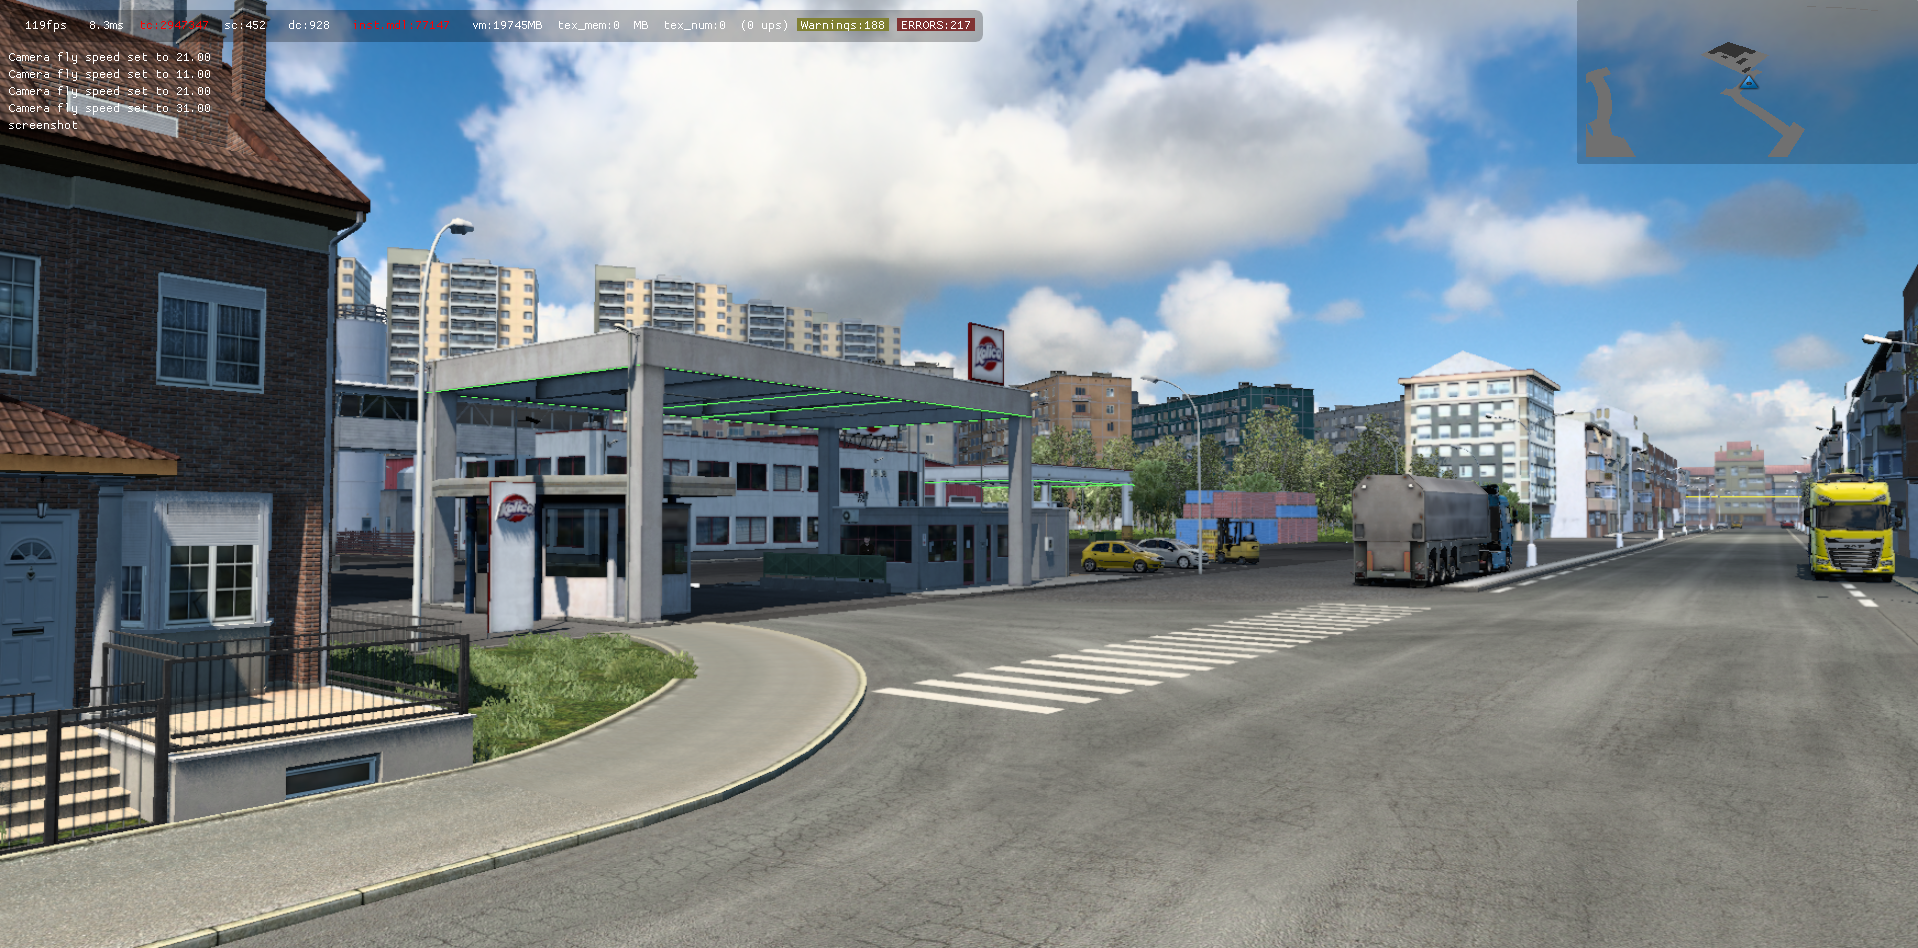 ets2_20210813_115004_00.png